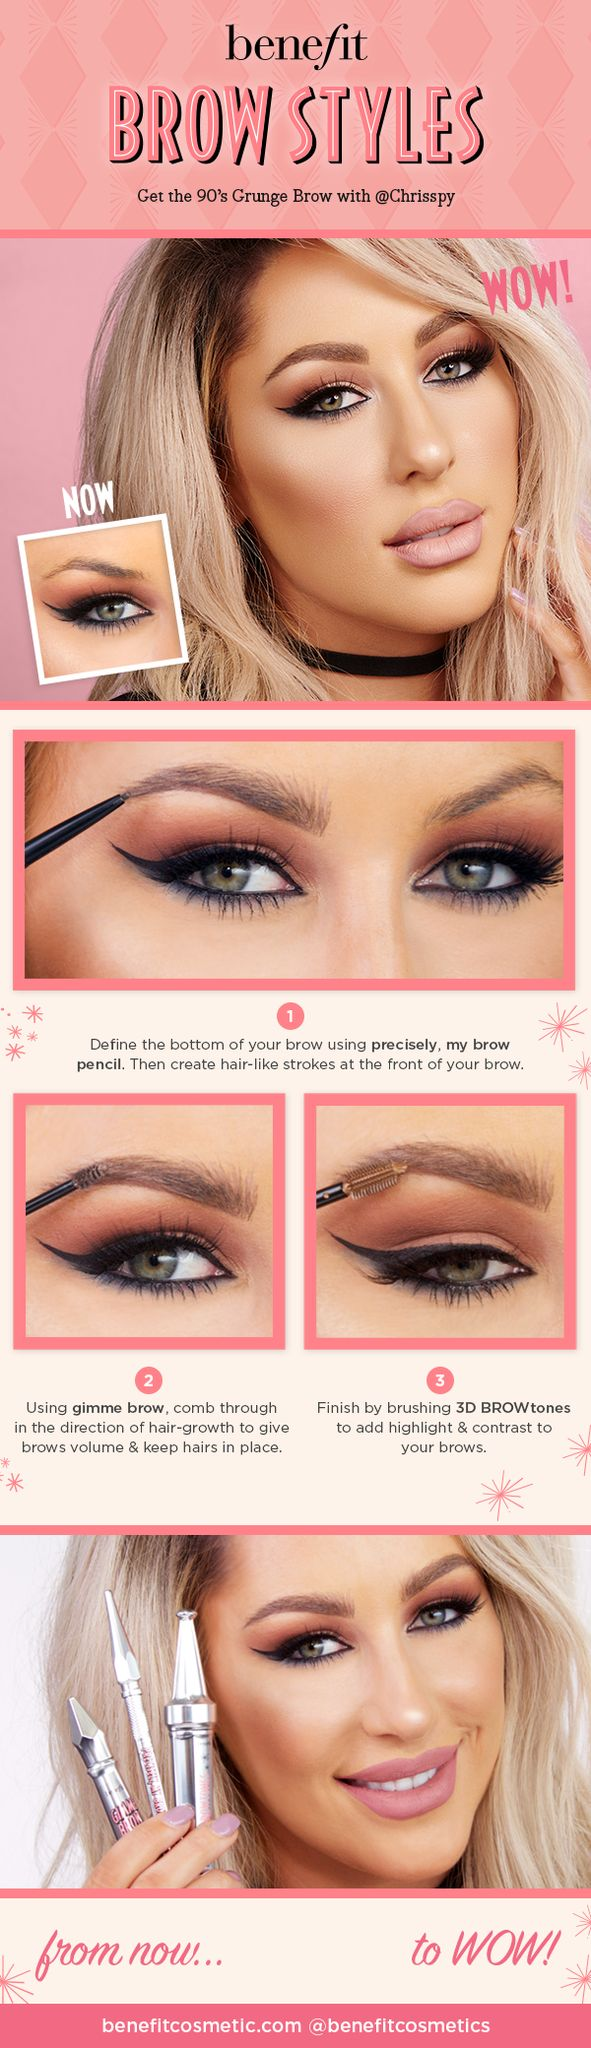 Check out this beautiful how-to look from @Chrisspy using Benefit Cosmetics brow products. #Sephora #HowTo